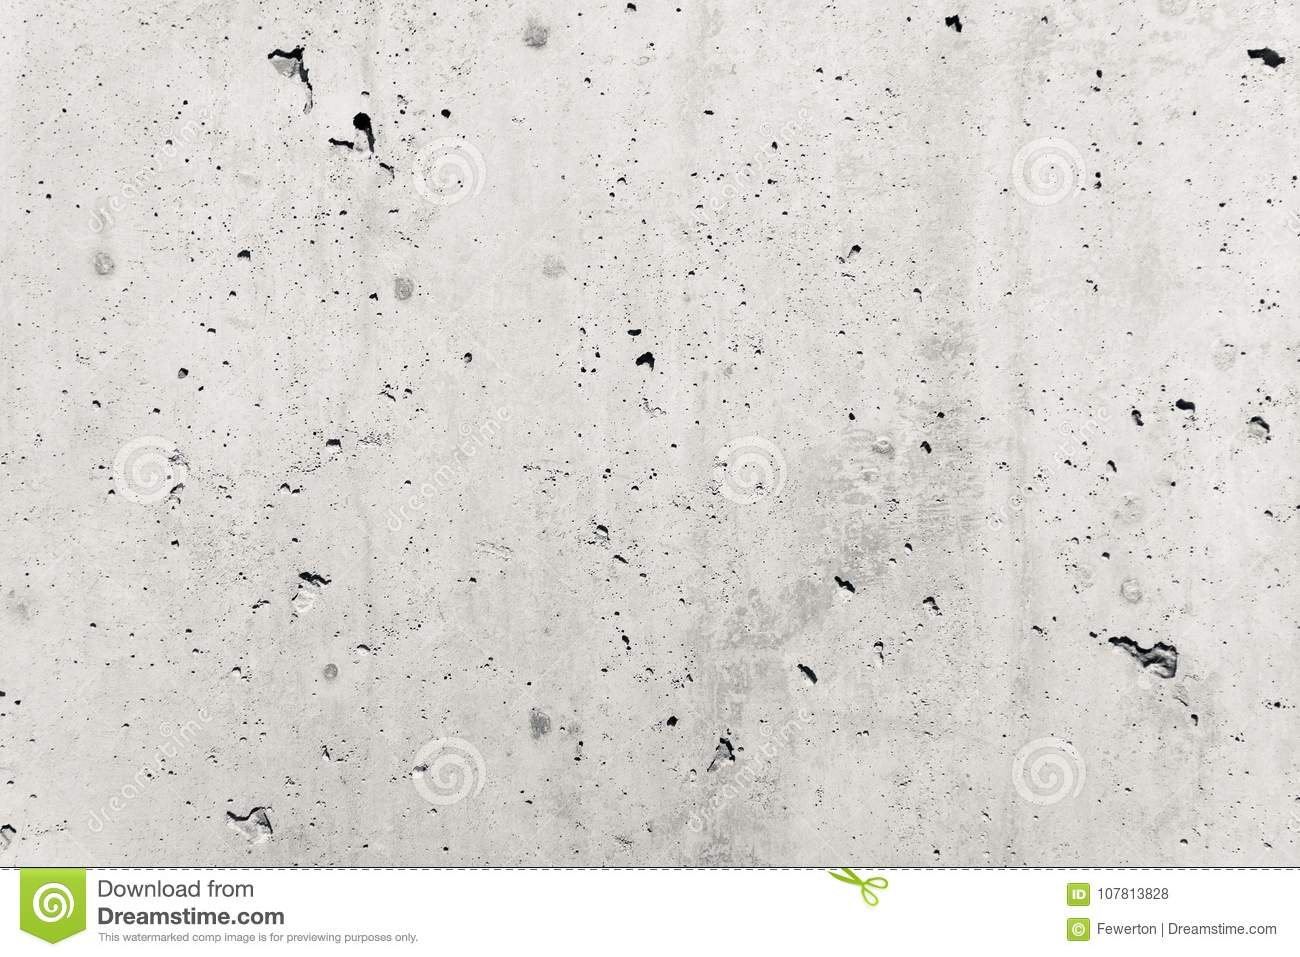 Concrete wall as gray coarse facade made of natural cement with holes and imperfections empty rustic texture concrete background